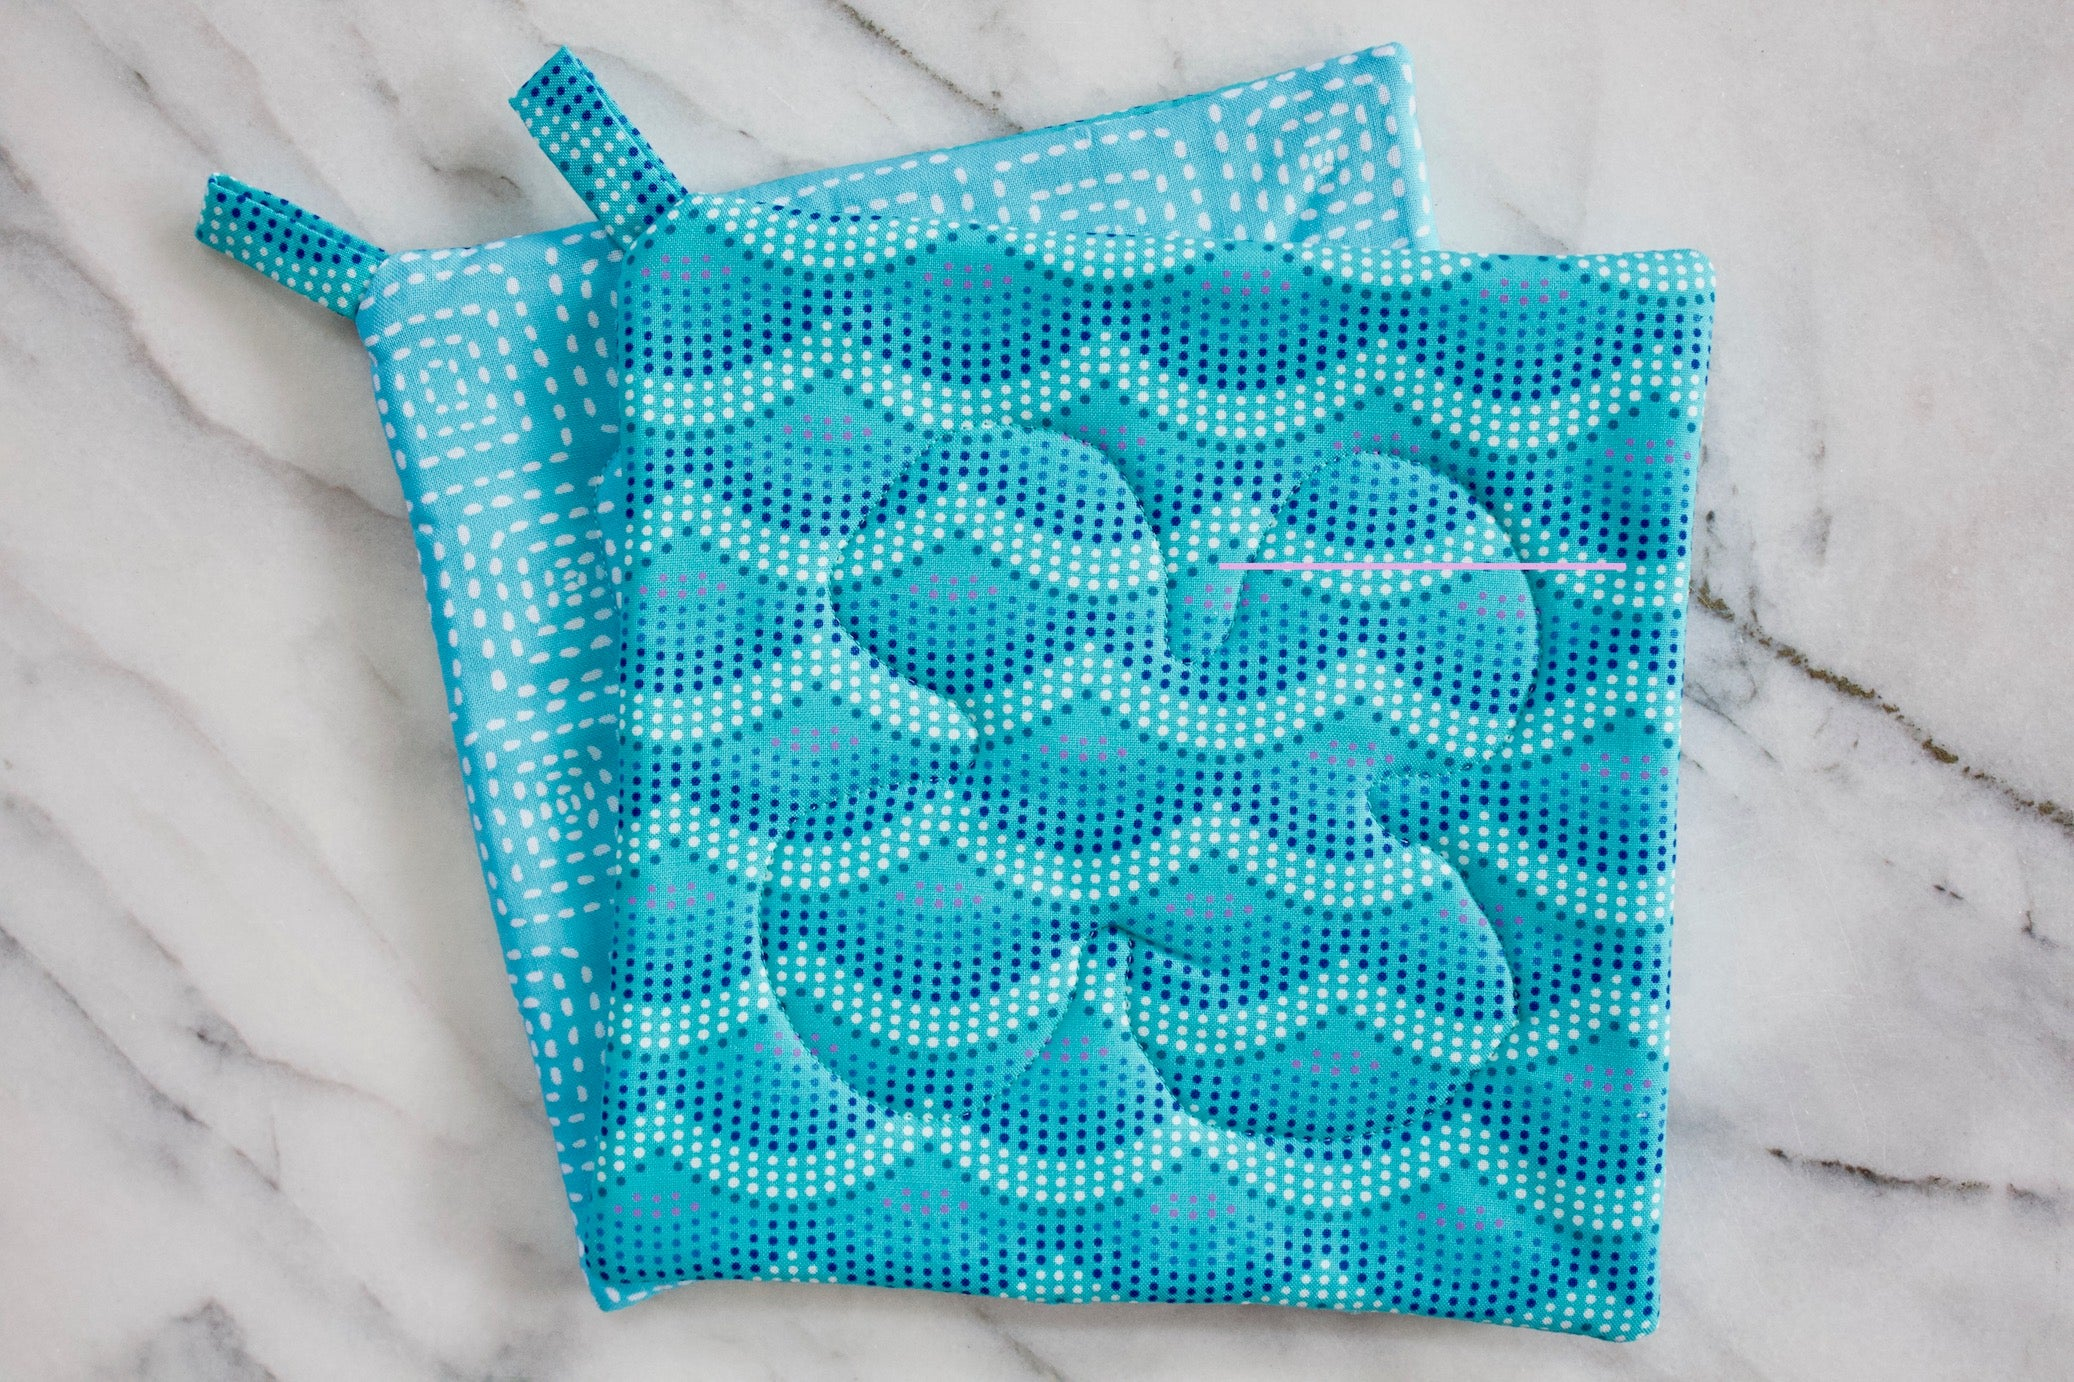 Seaside Potholder